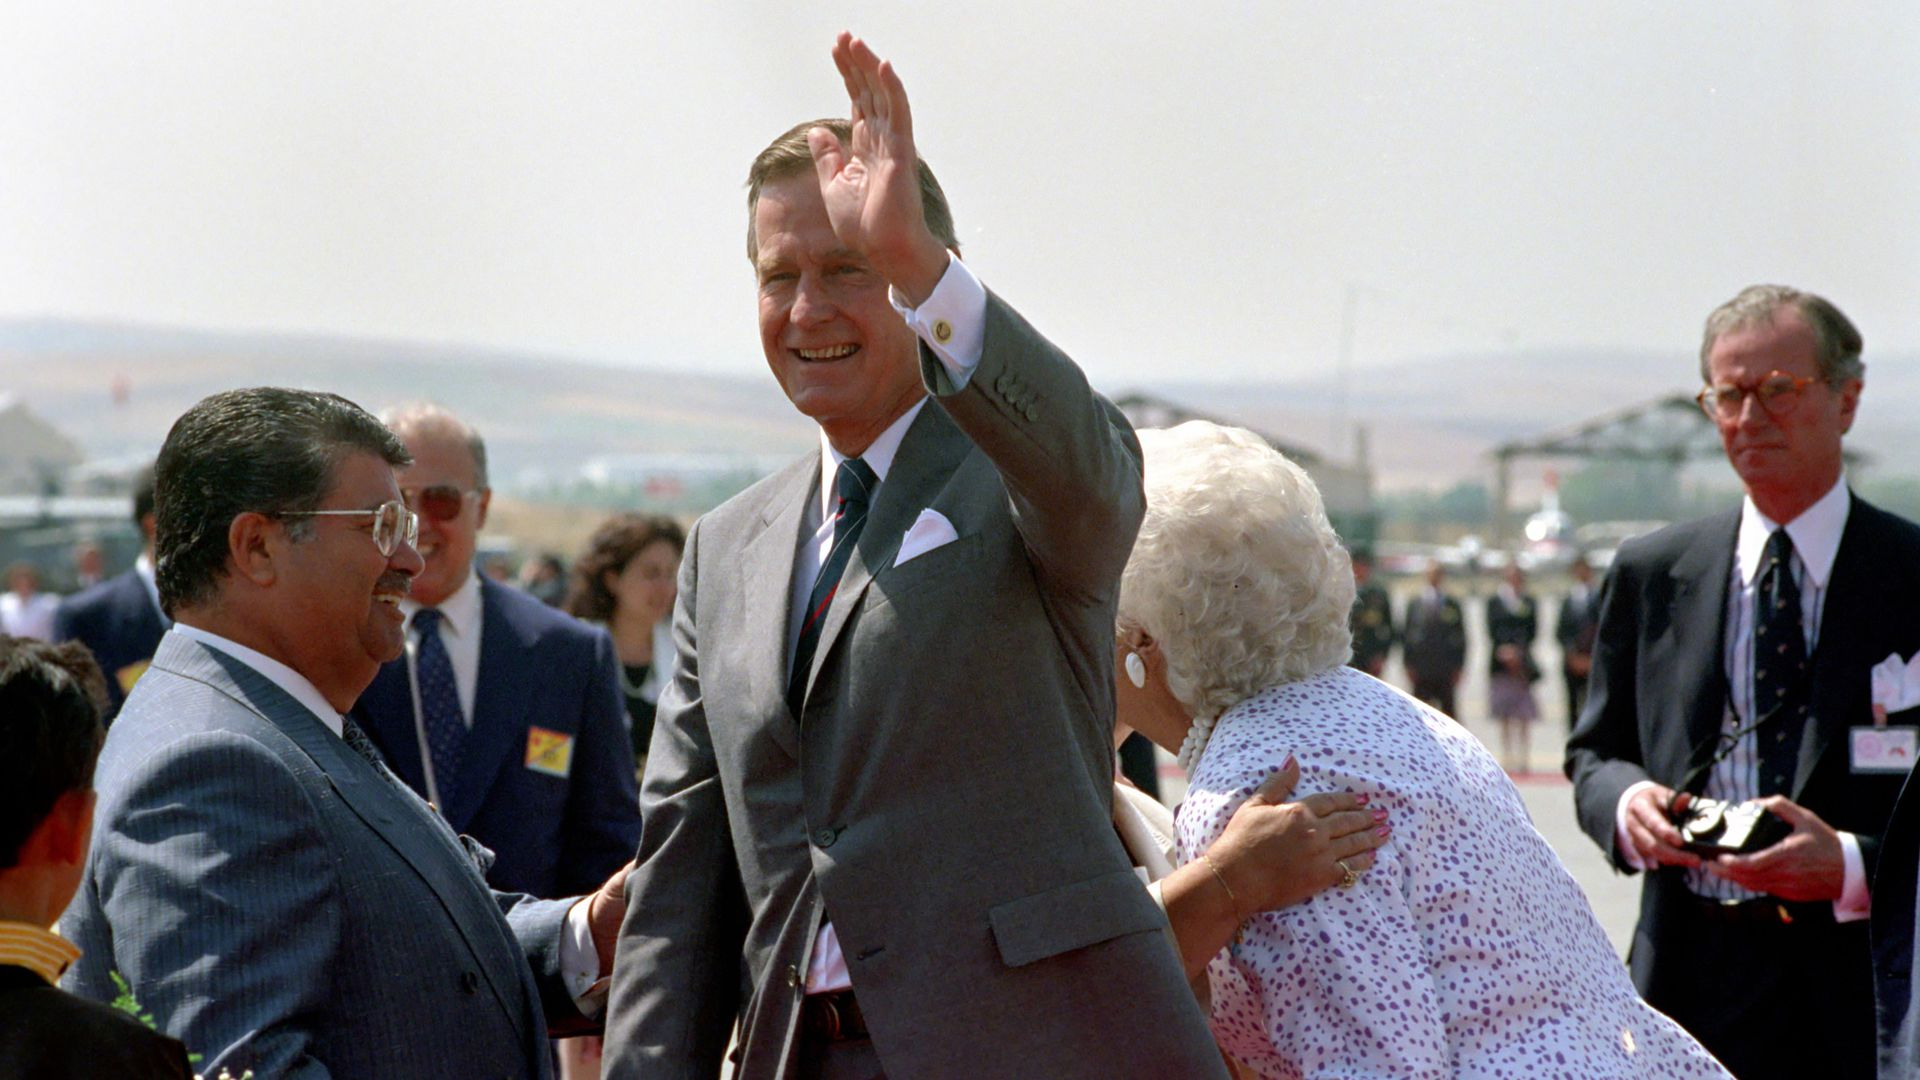 President George H.W. Bush waving.